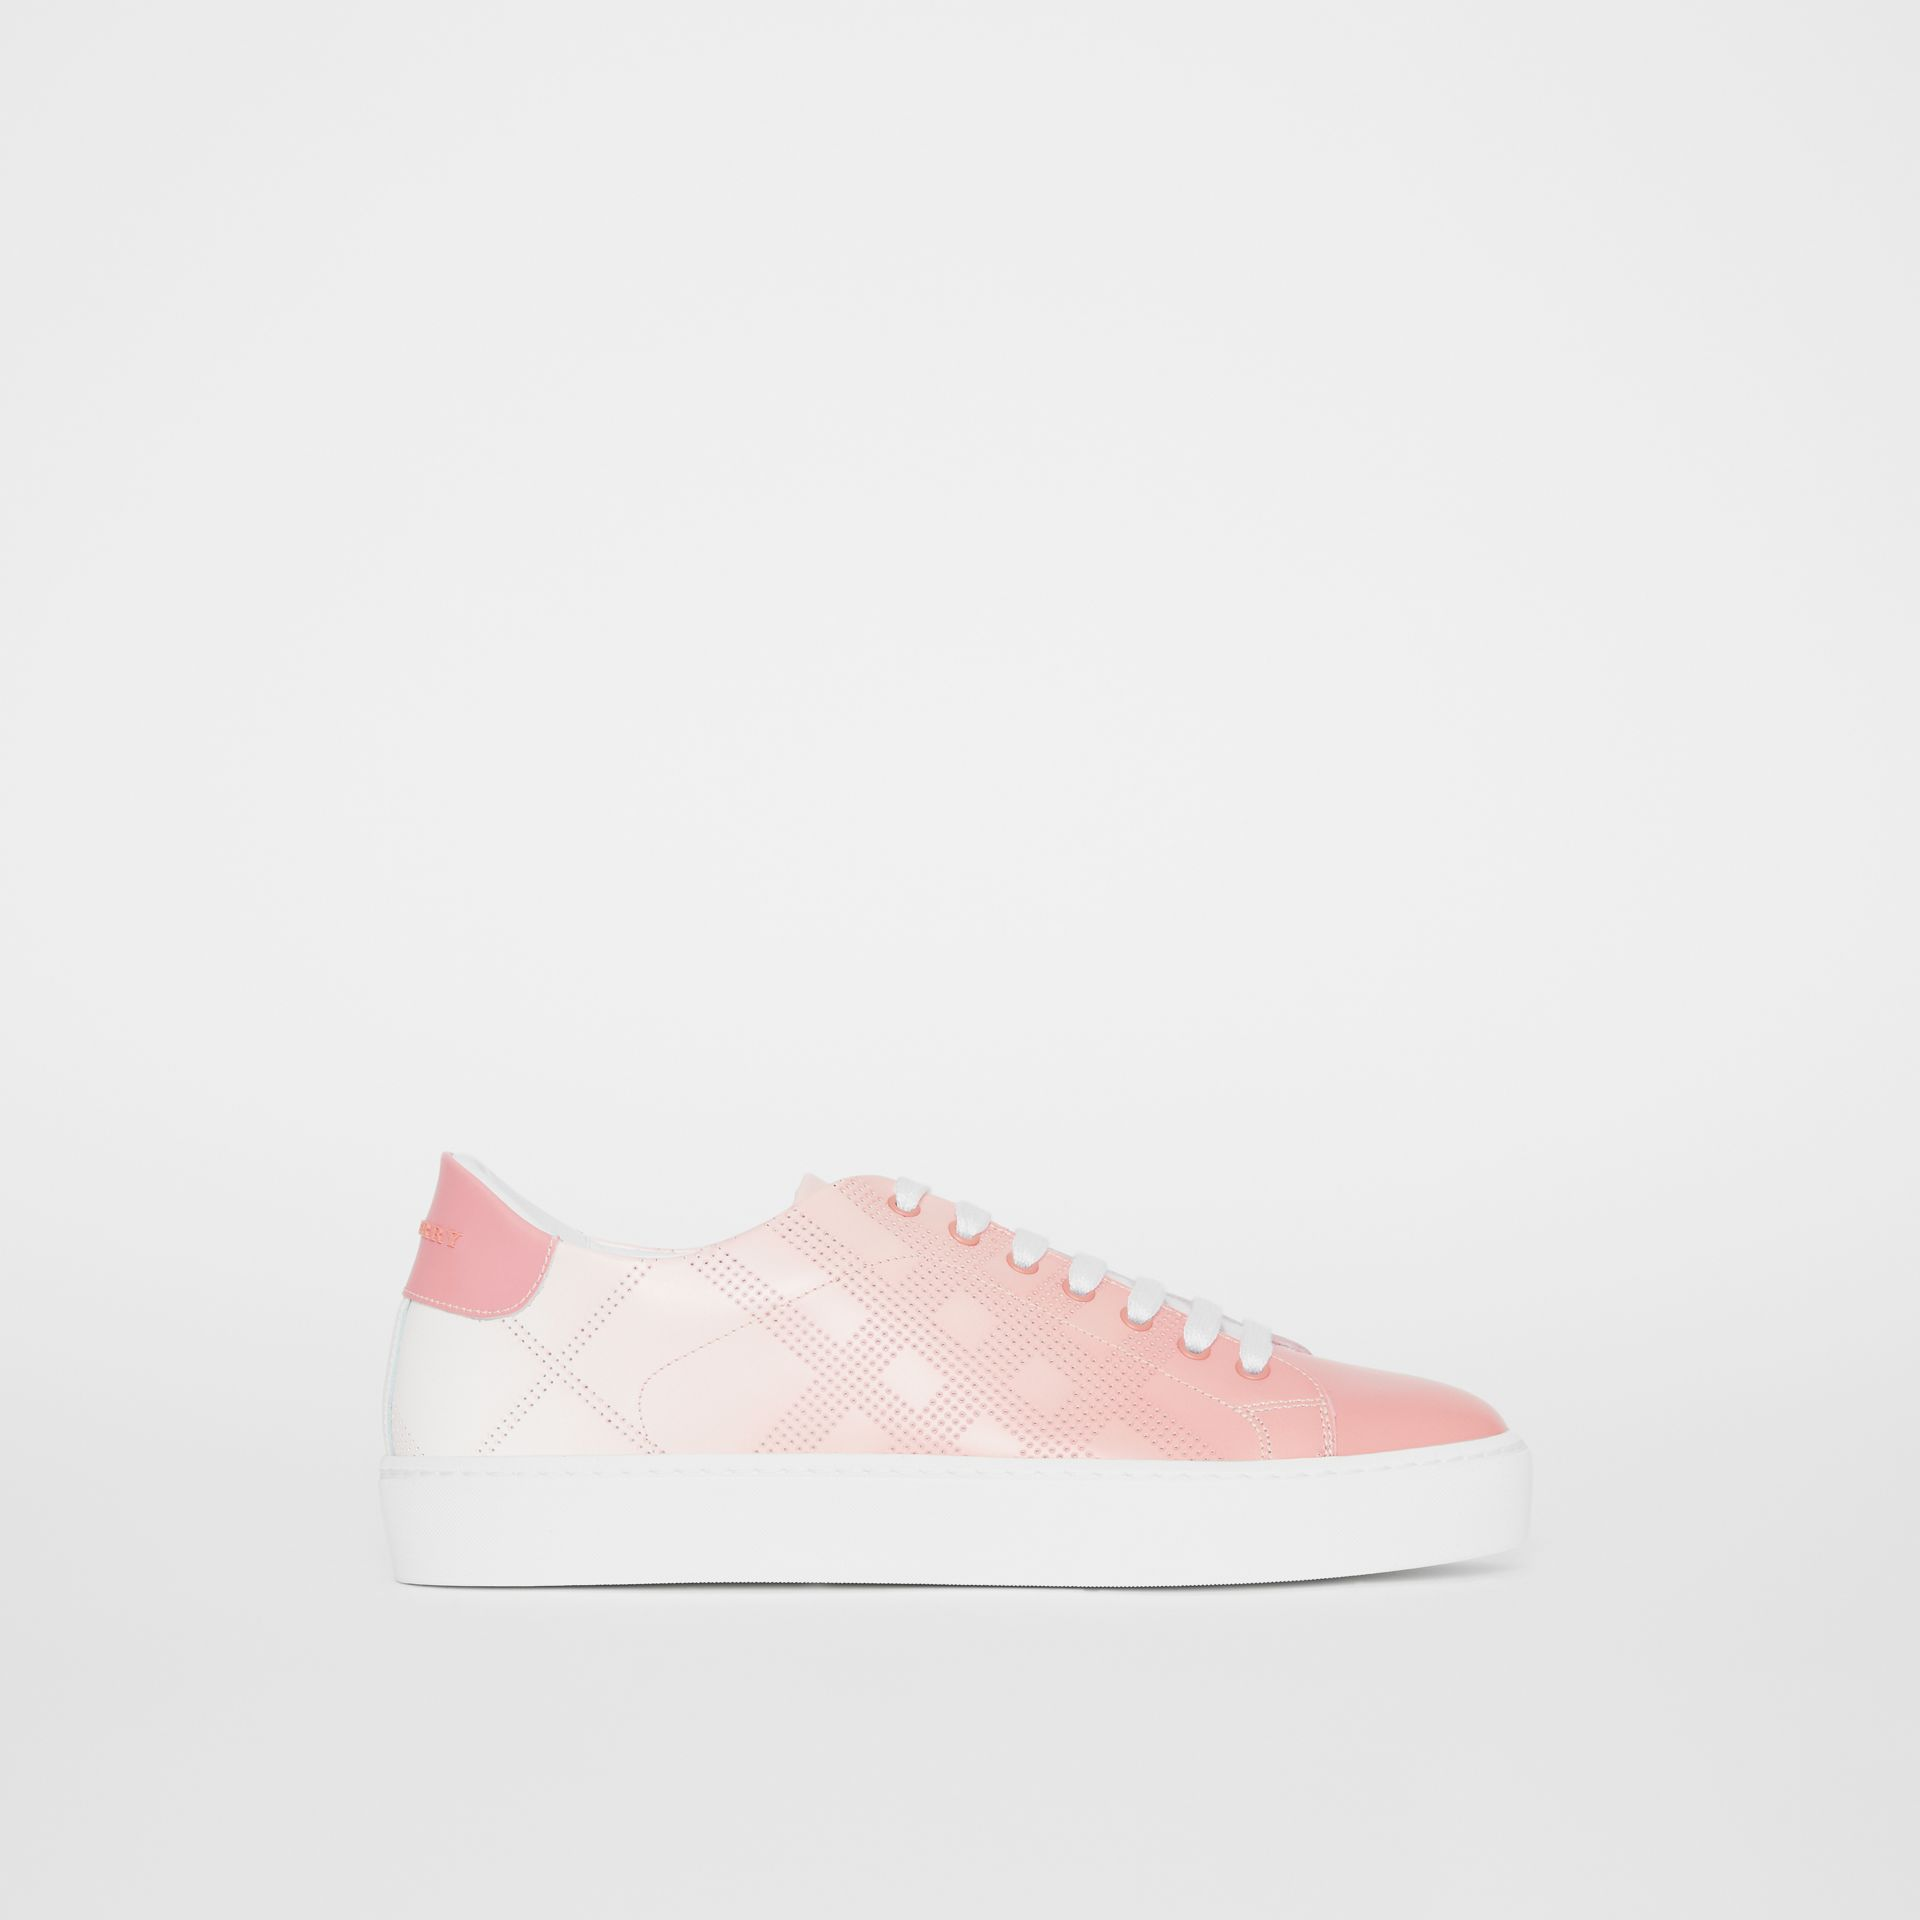 Perforated Check Dégradé Leather Sneakers in Sugar Pink - Women | Burberry - gallery image 6